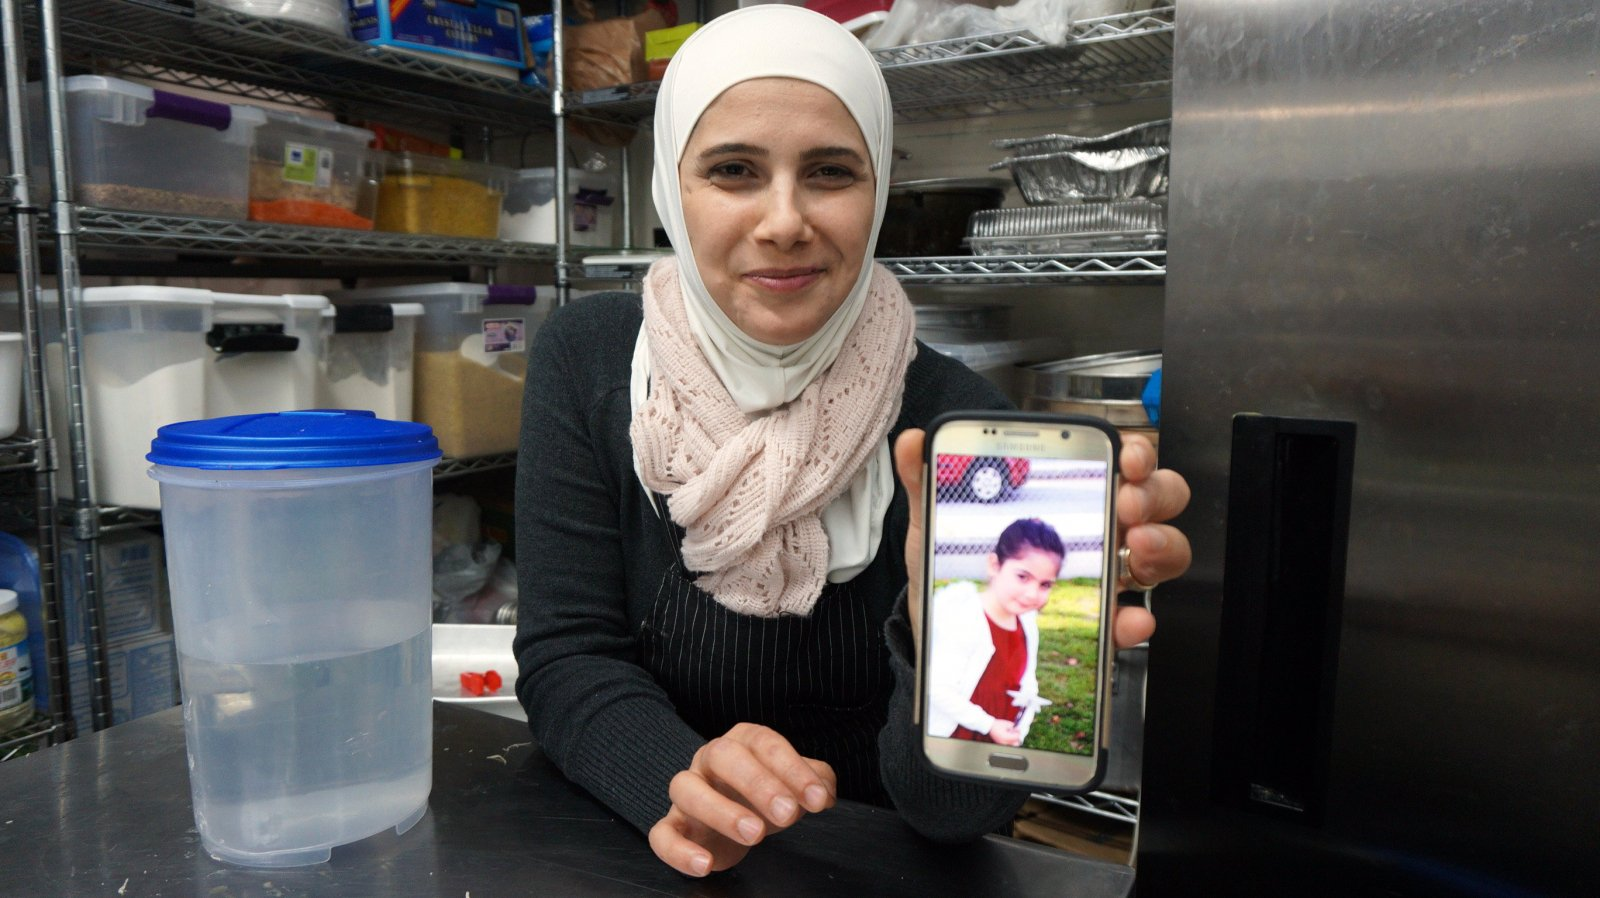 Syrian refugee women in Canada move into job market, bringing cooking skills with them (Canada's National Observer, Mar 9/18).